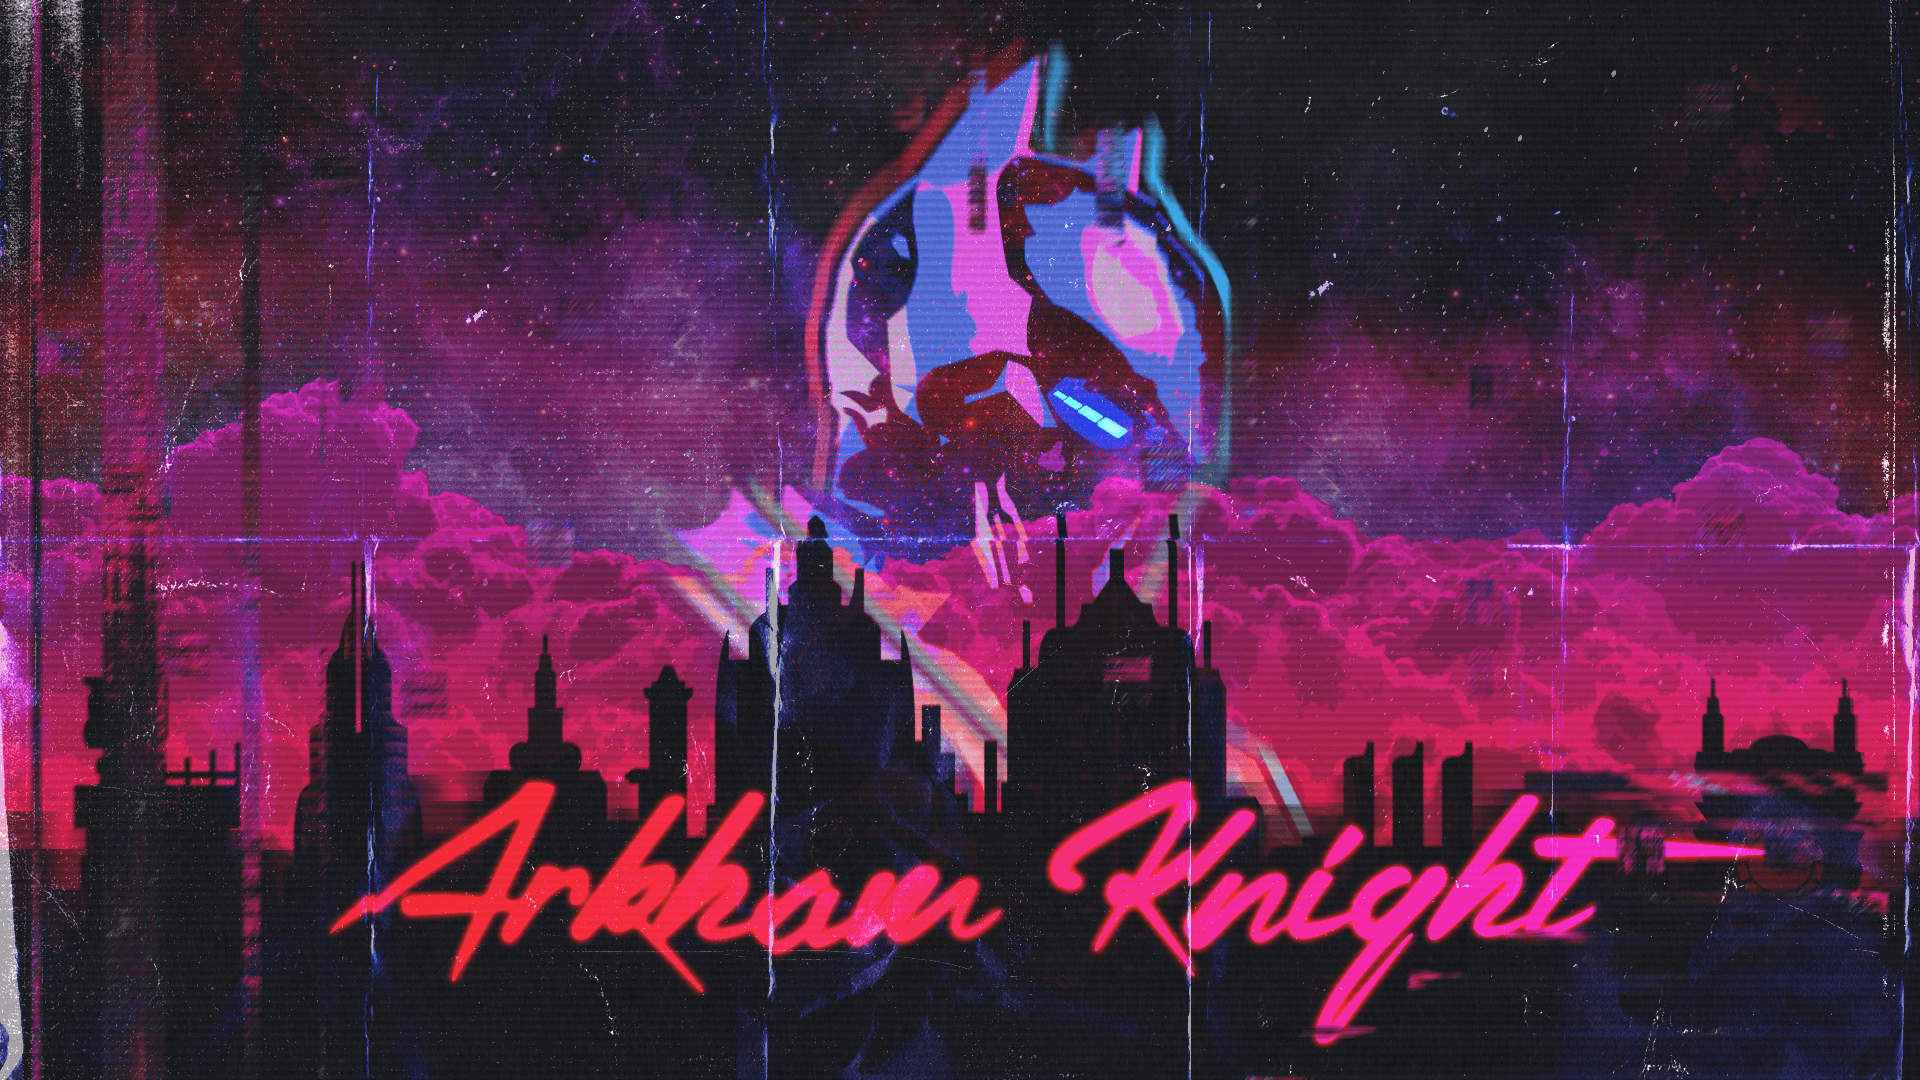 Outdrive Full Hd Wallpaper And Background Image Arkham Knight Retrowave 309475 Hd Wallpaper Backgrounds Download